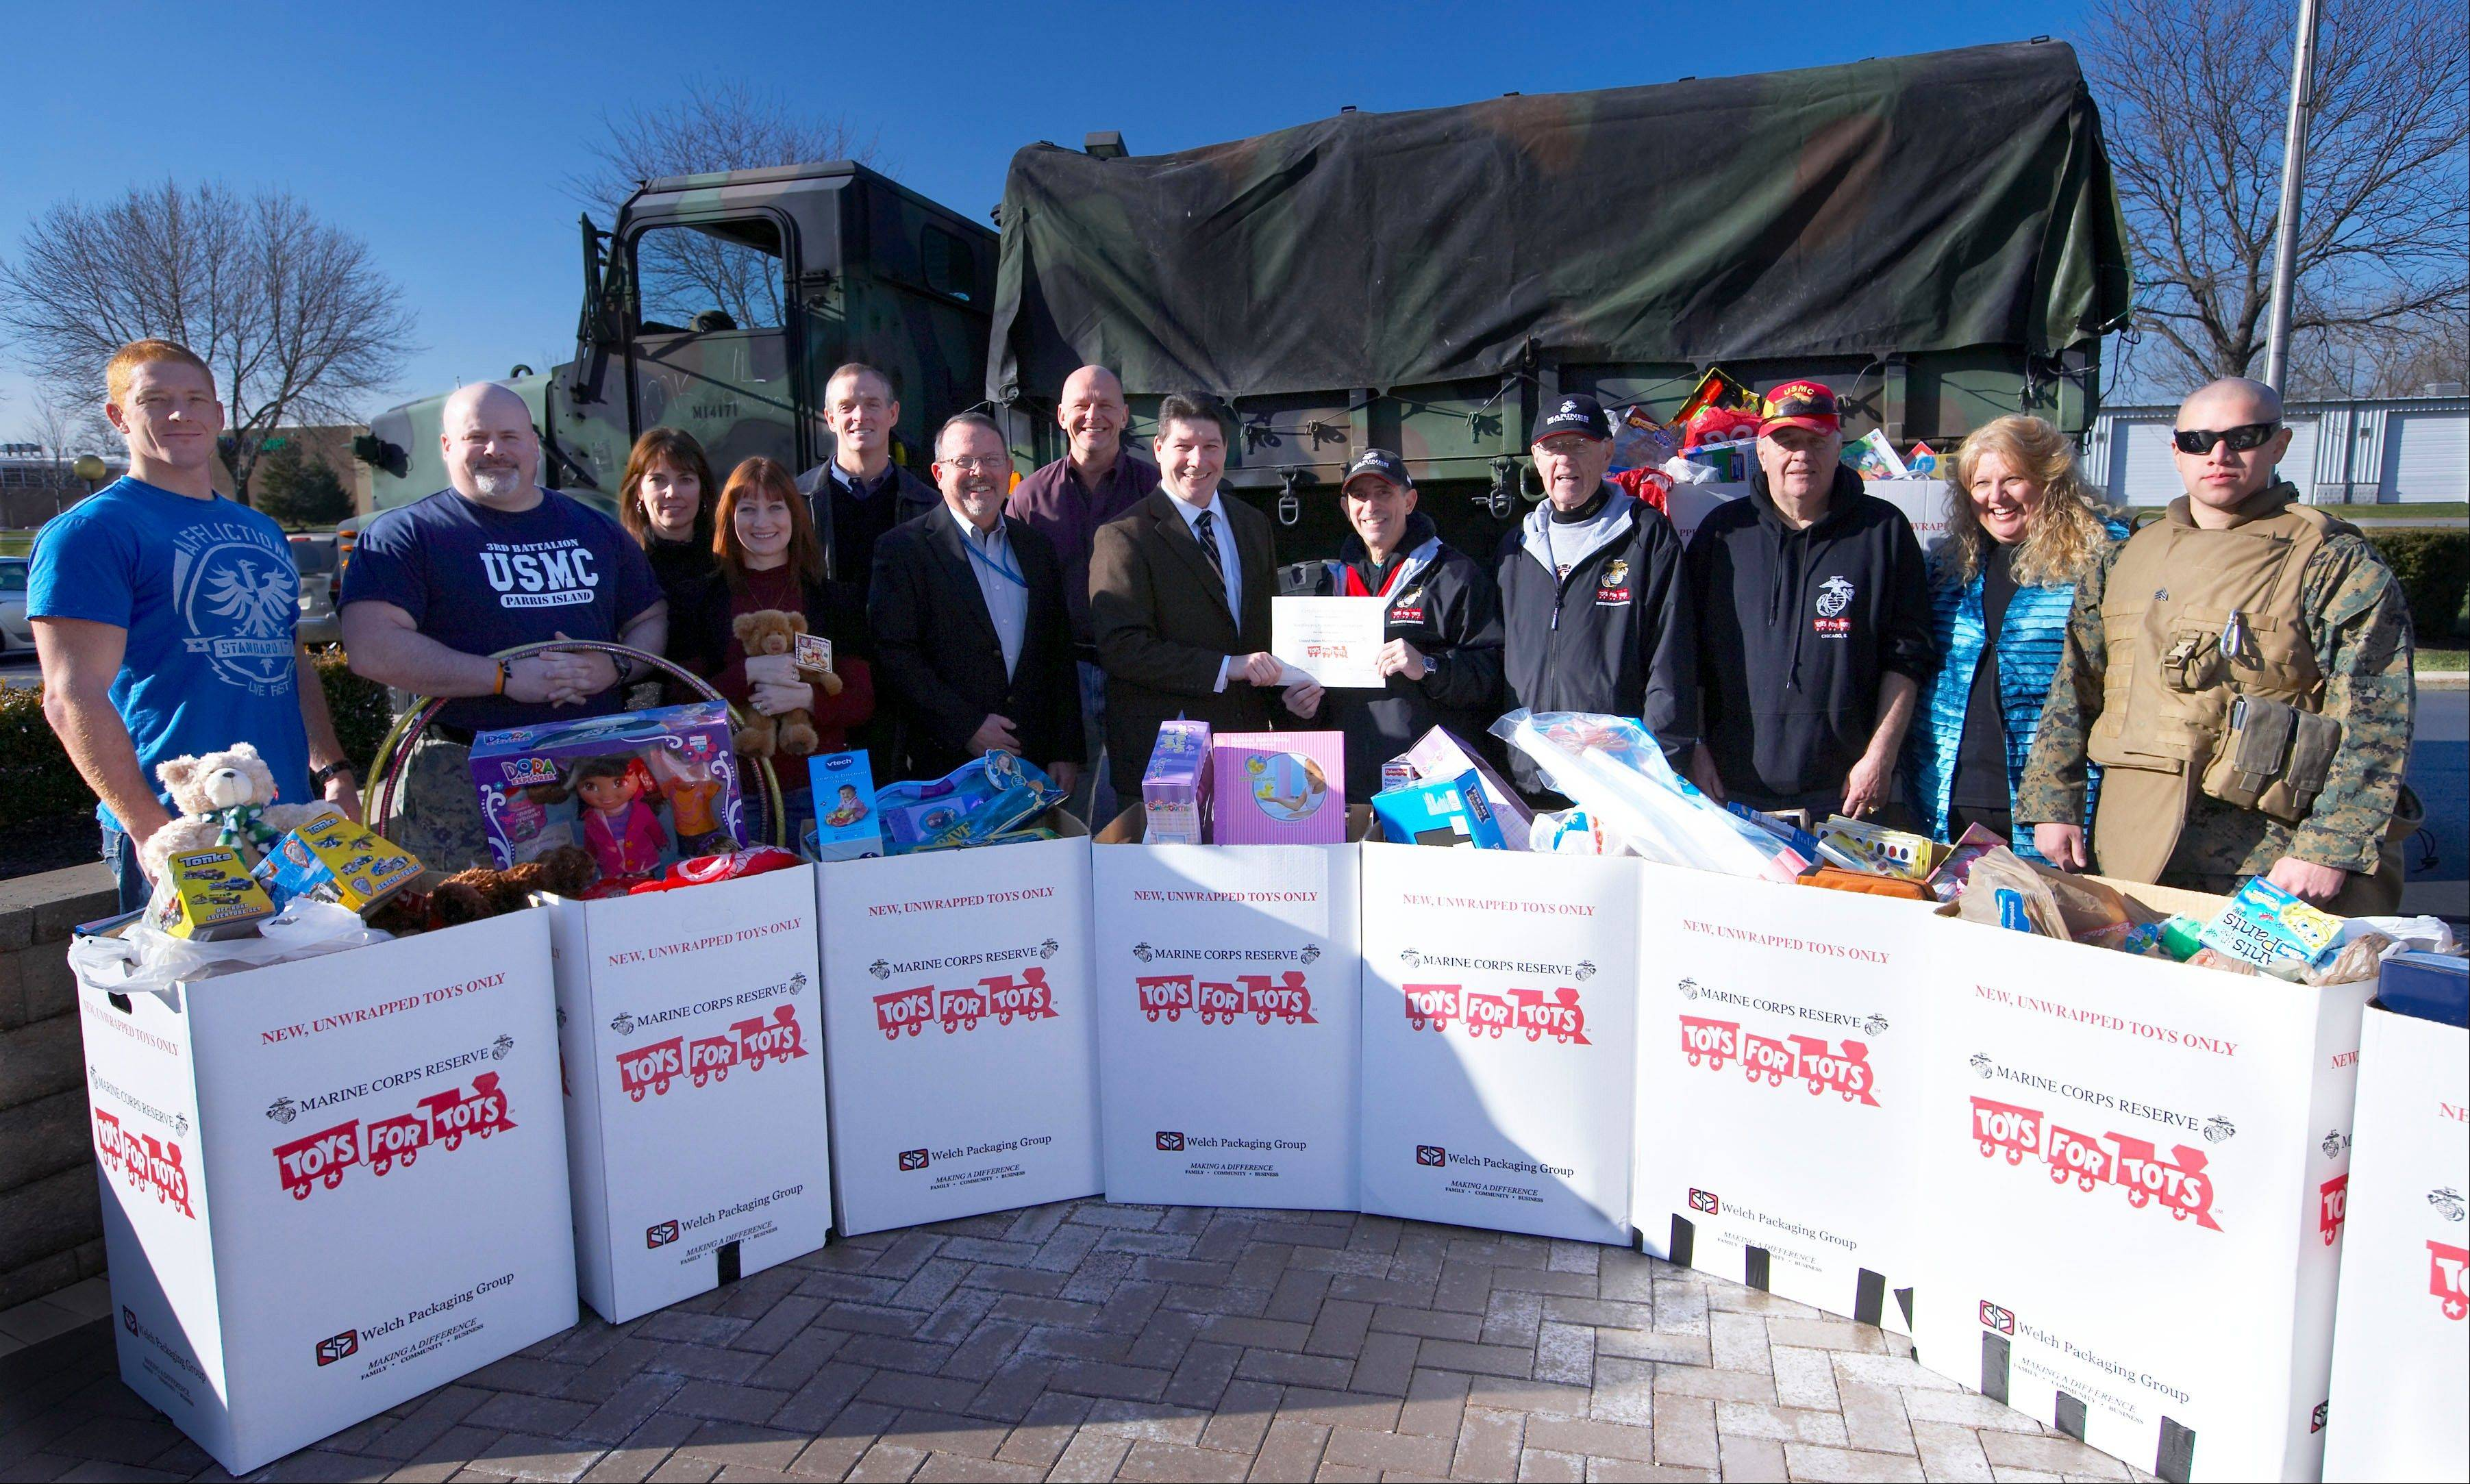 Showing their generosity, Northrop Grumman employees at the Rolling Meadows campus donated more than 10 large boxes of gifts to the U.S. Marine Corps Reserve Toys for Tots program.